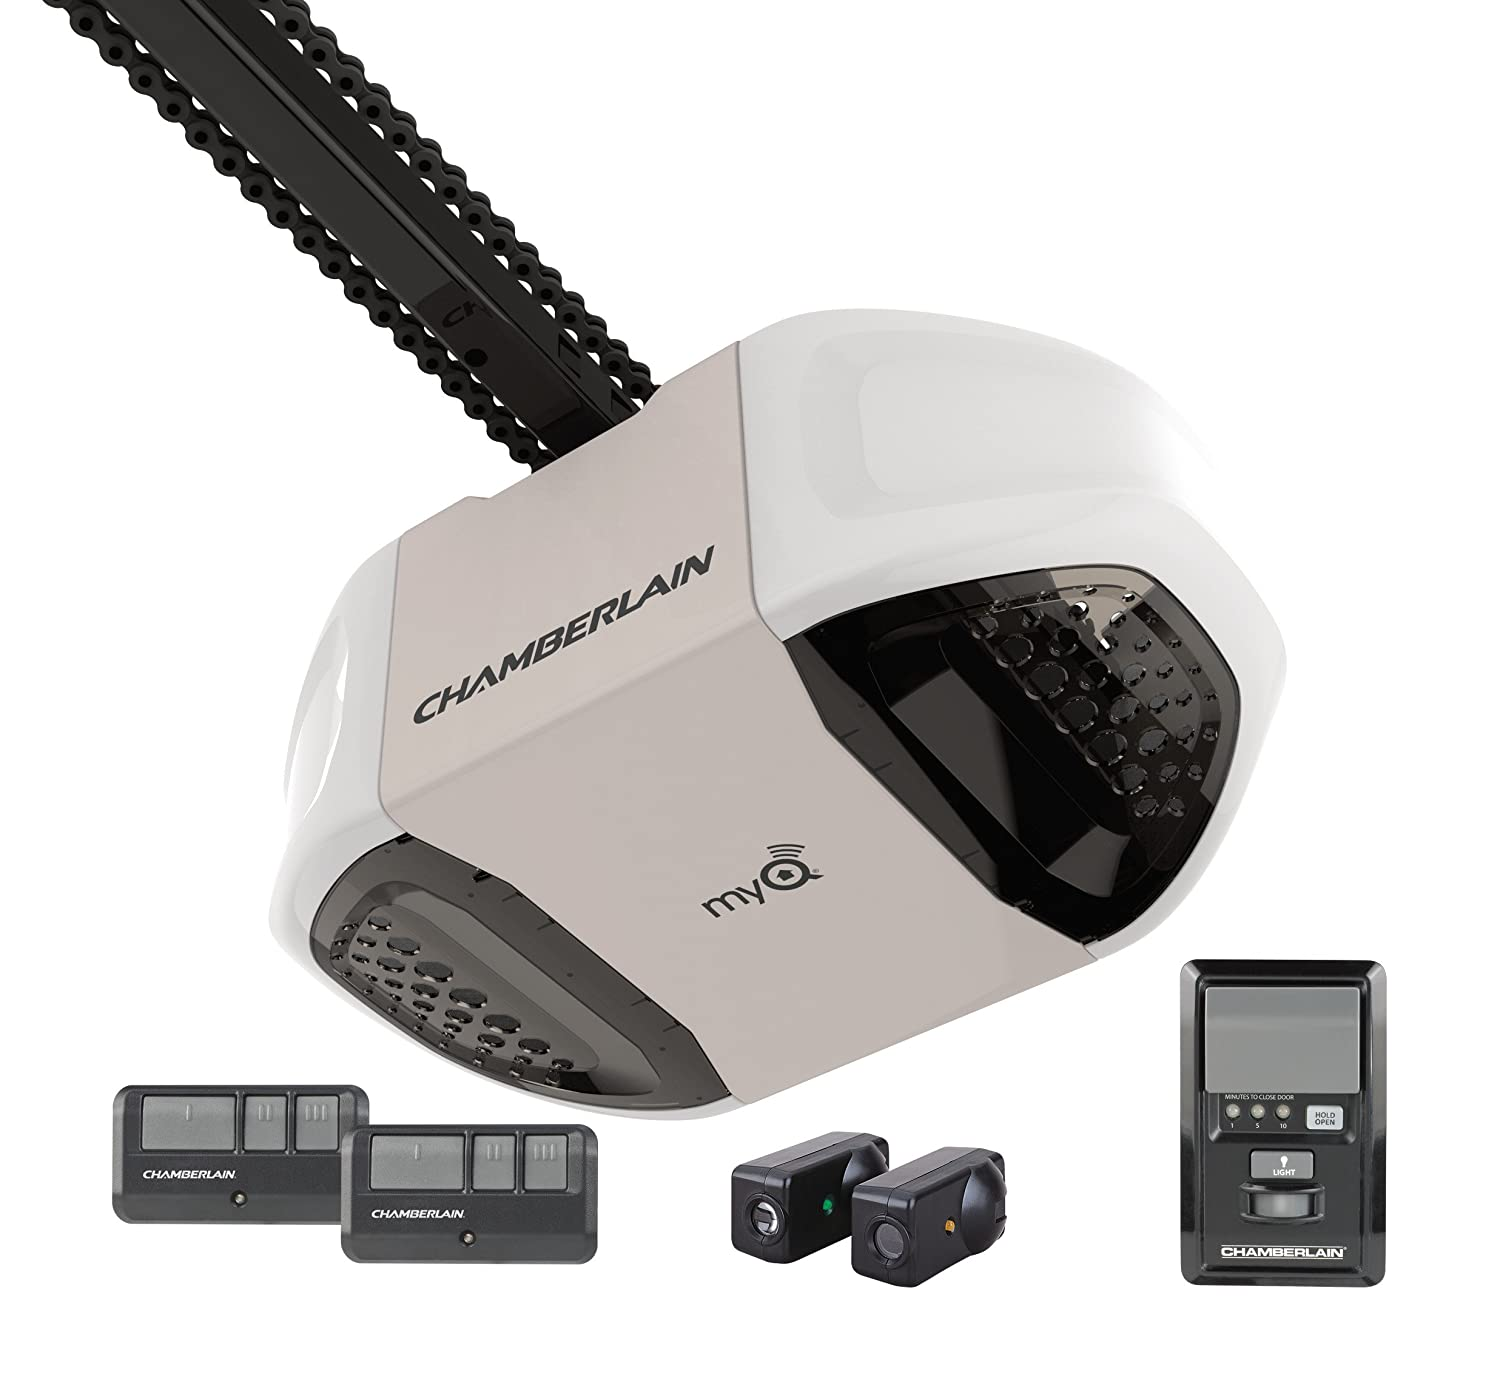 Chamberlain Pd762ev Garage Door Opener Hp Durable Chain Drive